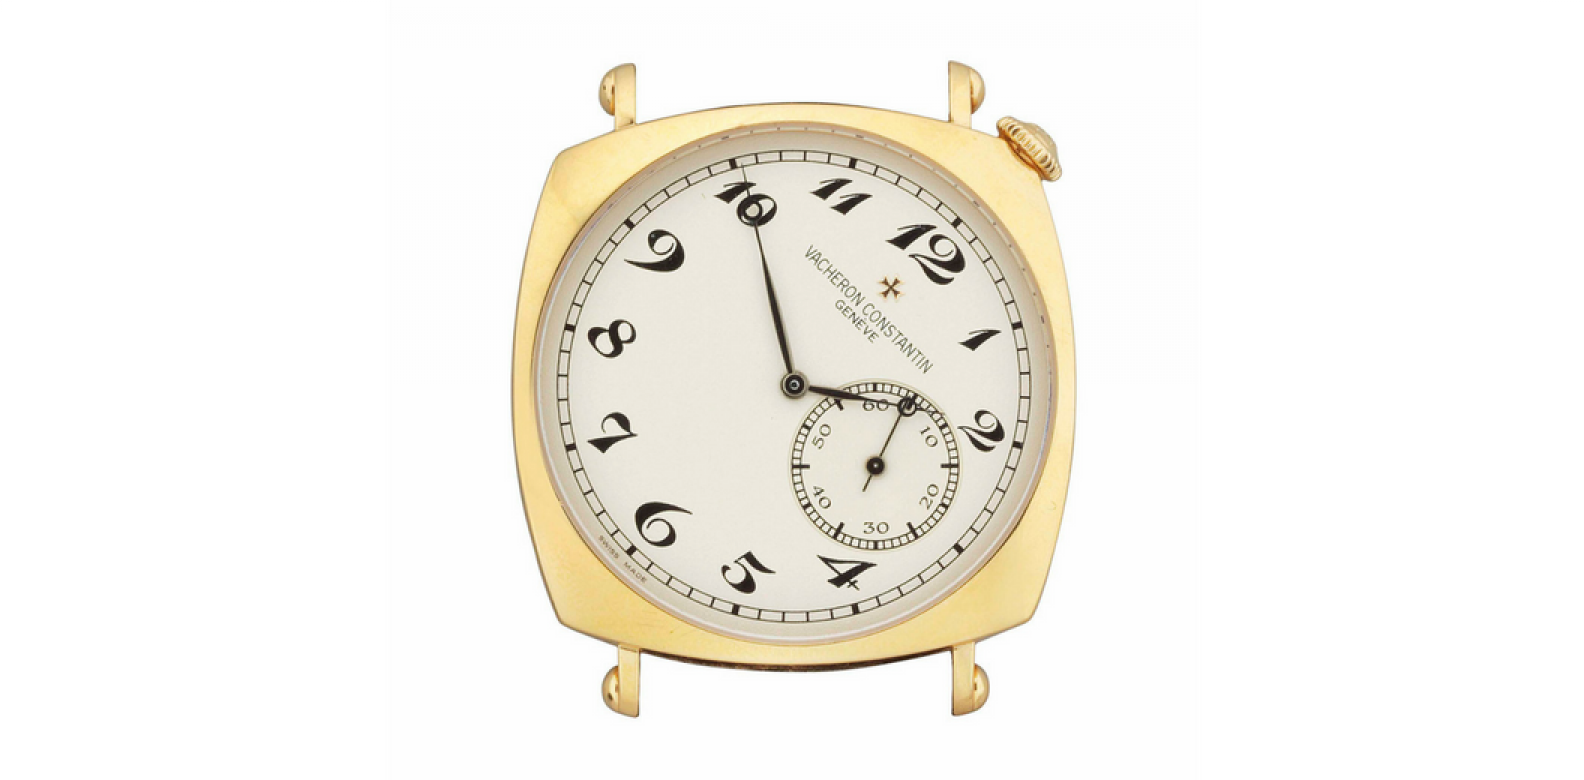 Vacheron Constantin 18ct. gold driver's wristwatch (Photo: Courtesy of Christie's London)